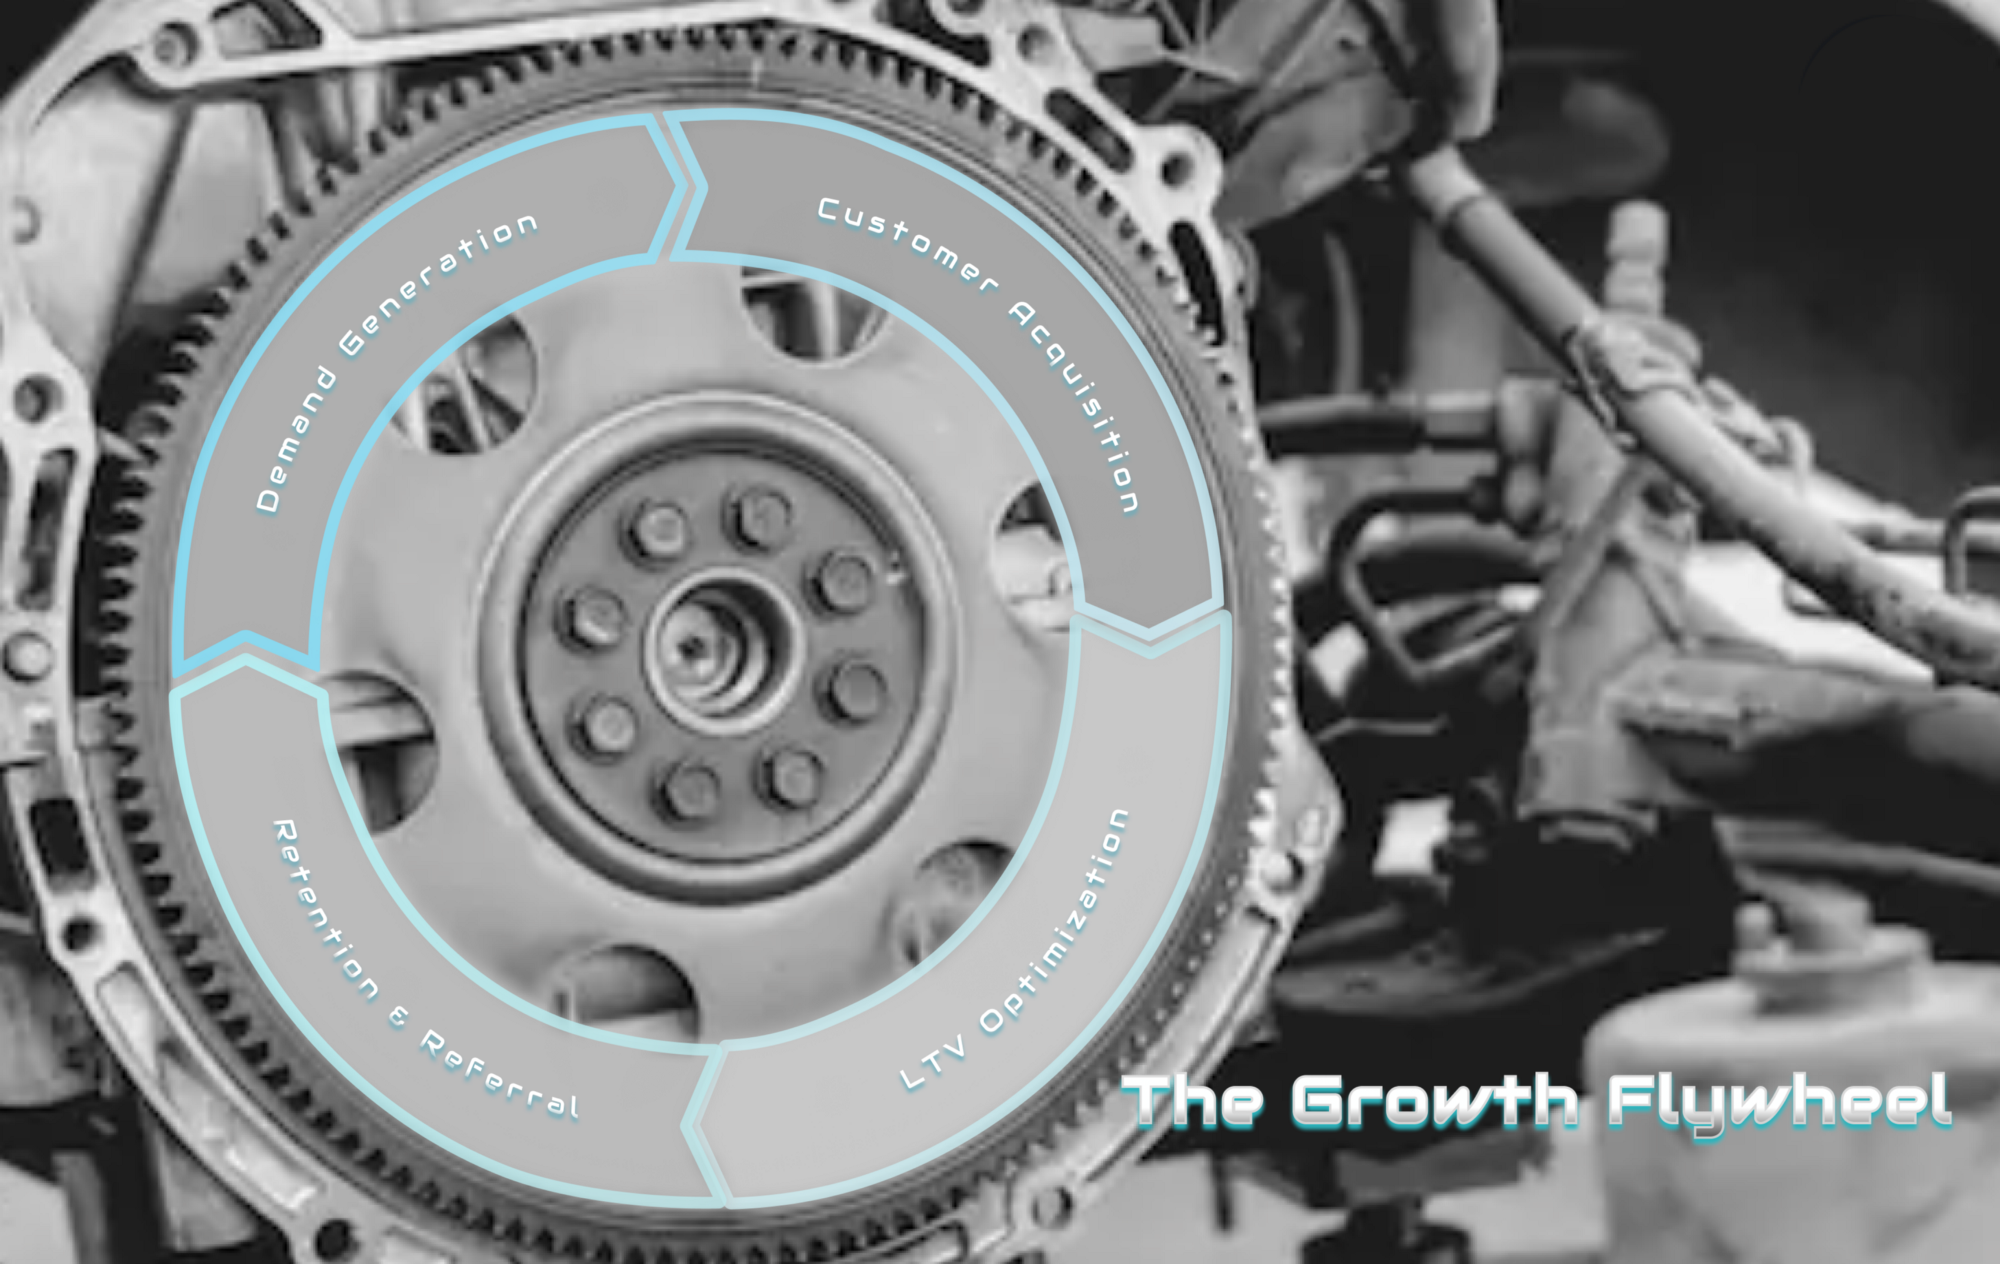 The Growth Flywheel